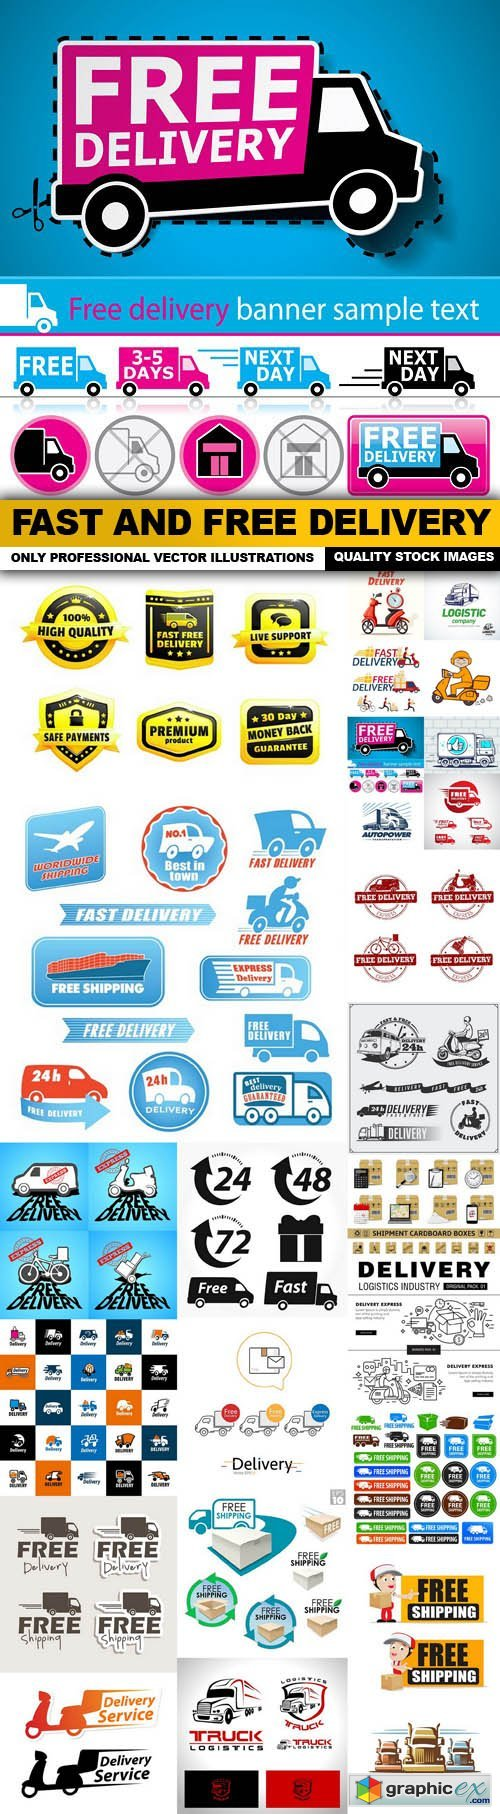 Fast And Free Delivery - 25 Vector